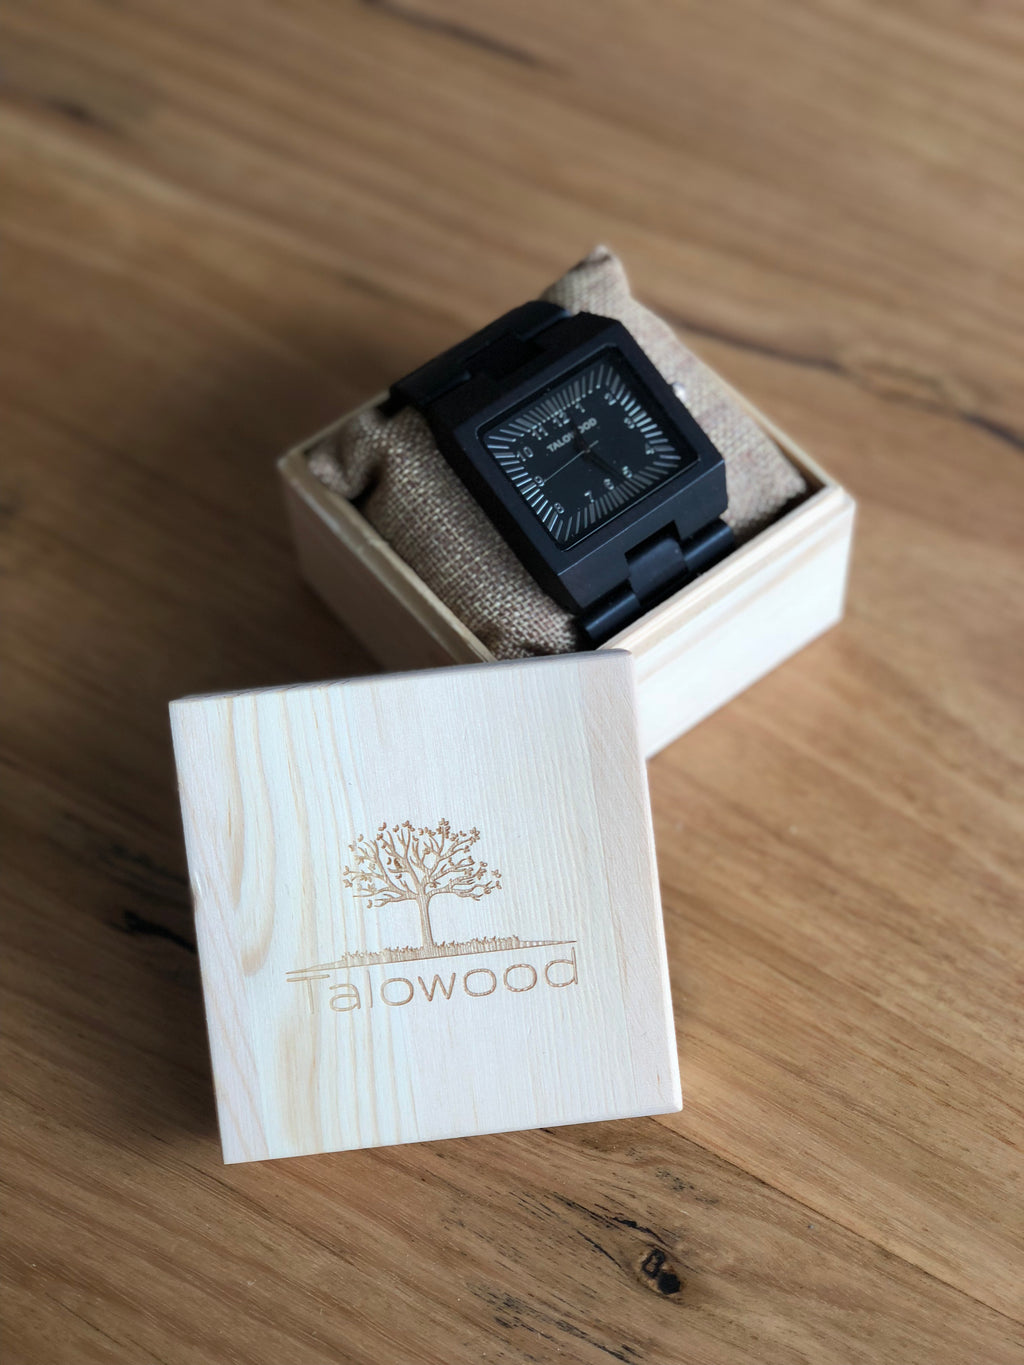 TALOWOOD THE BIG BOY HAND MADE WOODEN WATCH DARK WALNUT